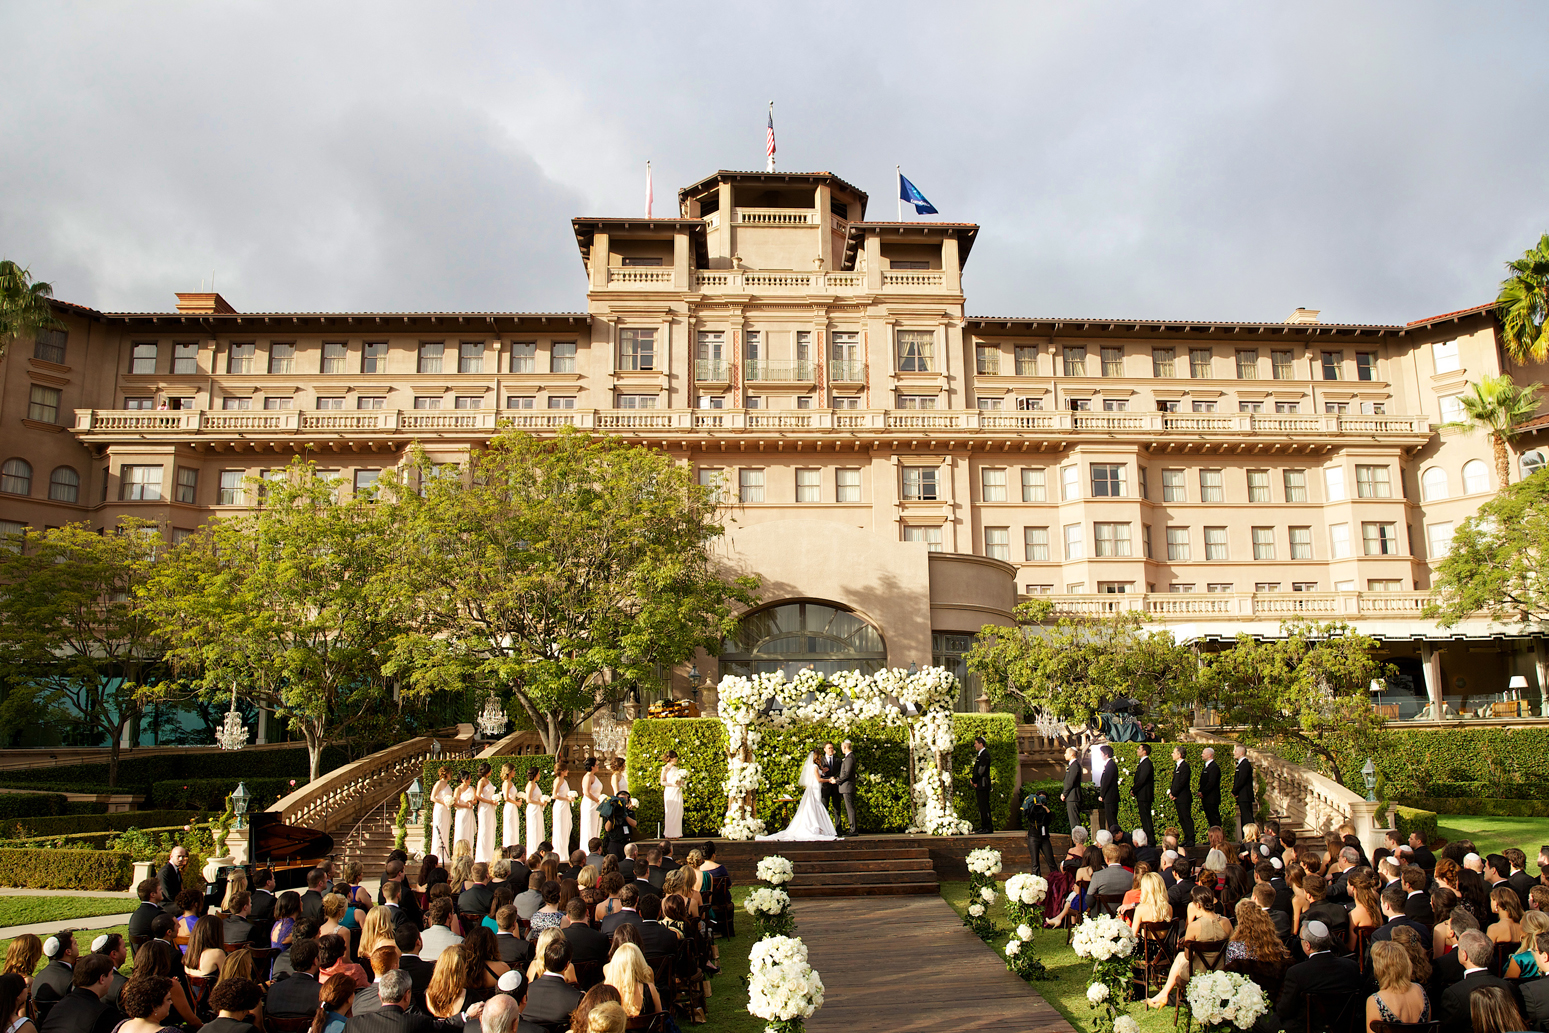 The langham huntington pasadena pasadena ca wedding venue for The huntington